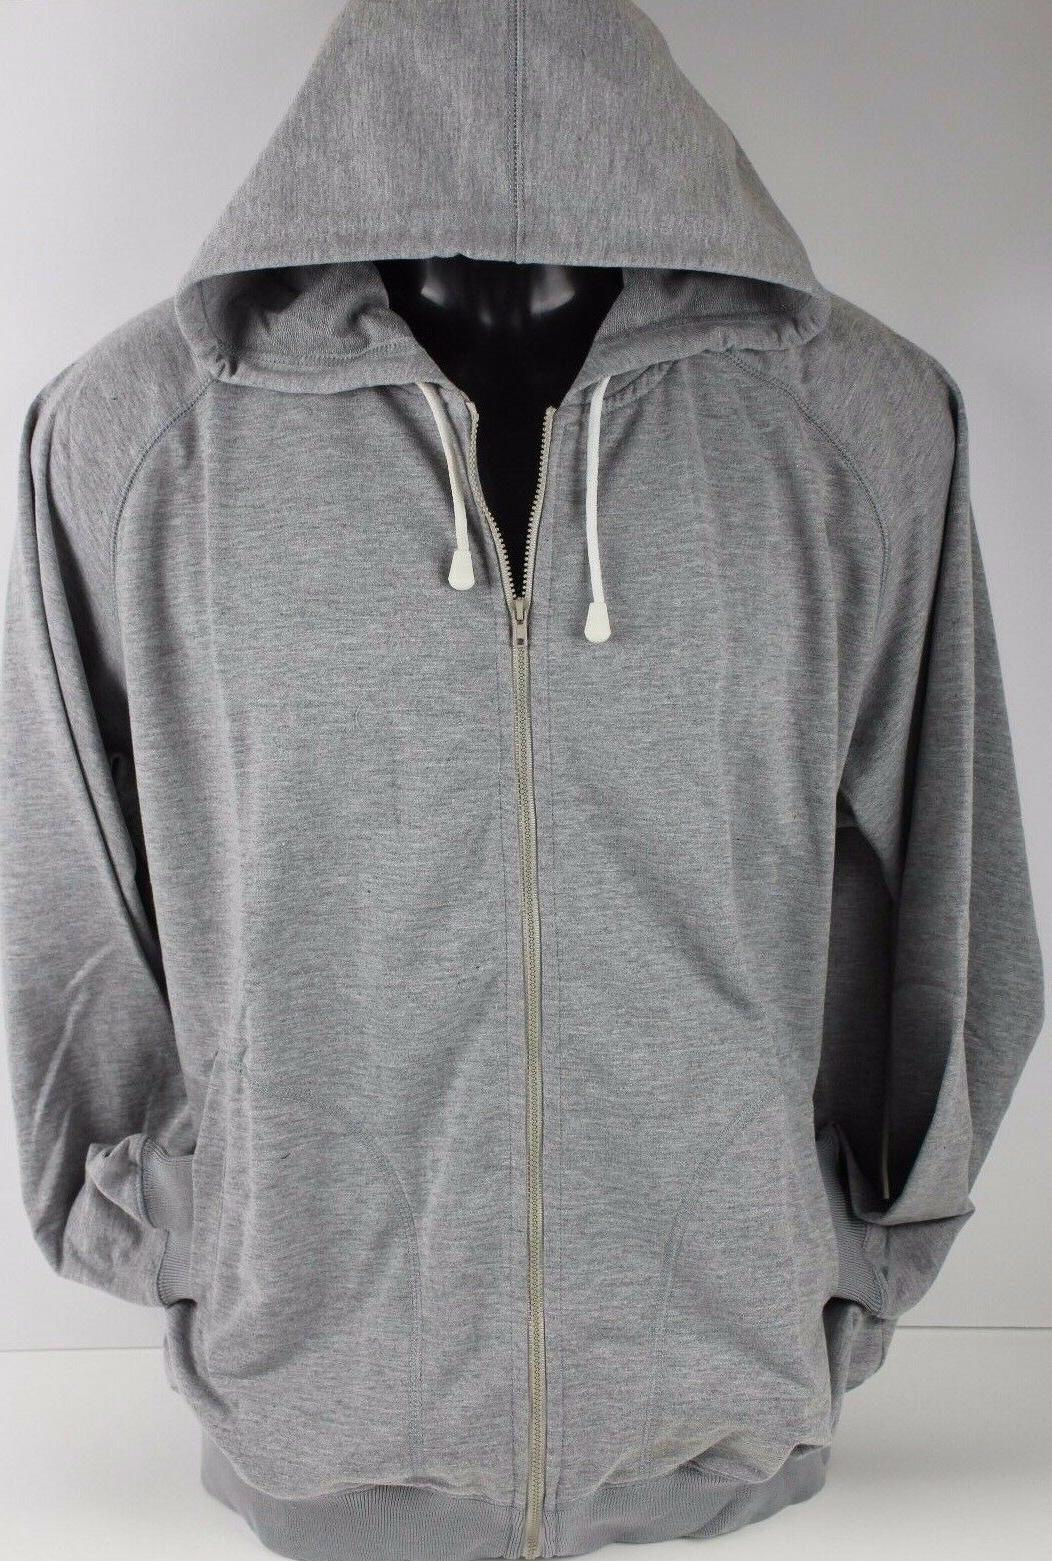 Hoodie Classic Zipper Hooded Sweatshirt Cotton adult Zip Up